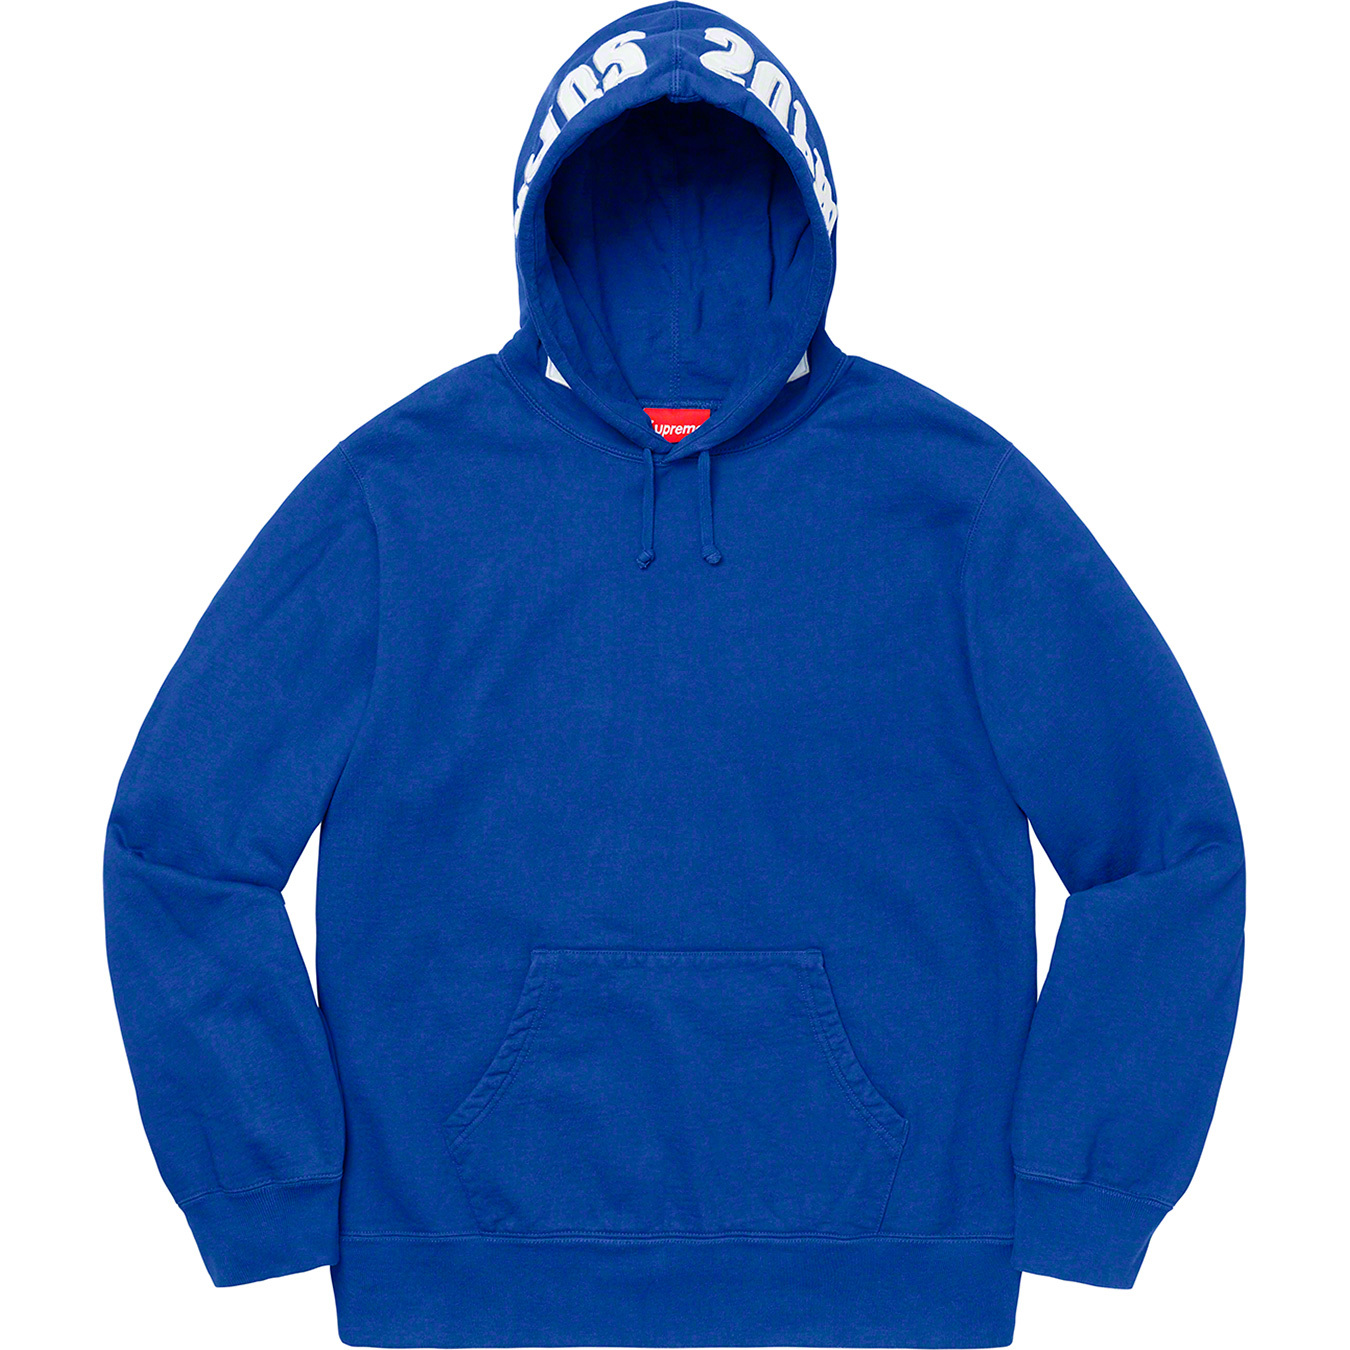 supreme-19aw-19fw-fall-winter-mirrored-logo-hooded-sweatshirt